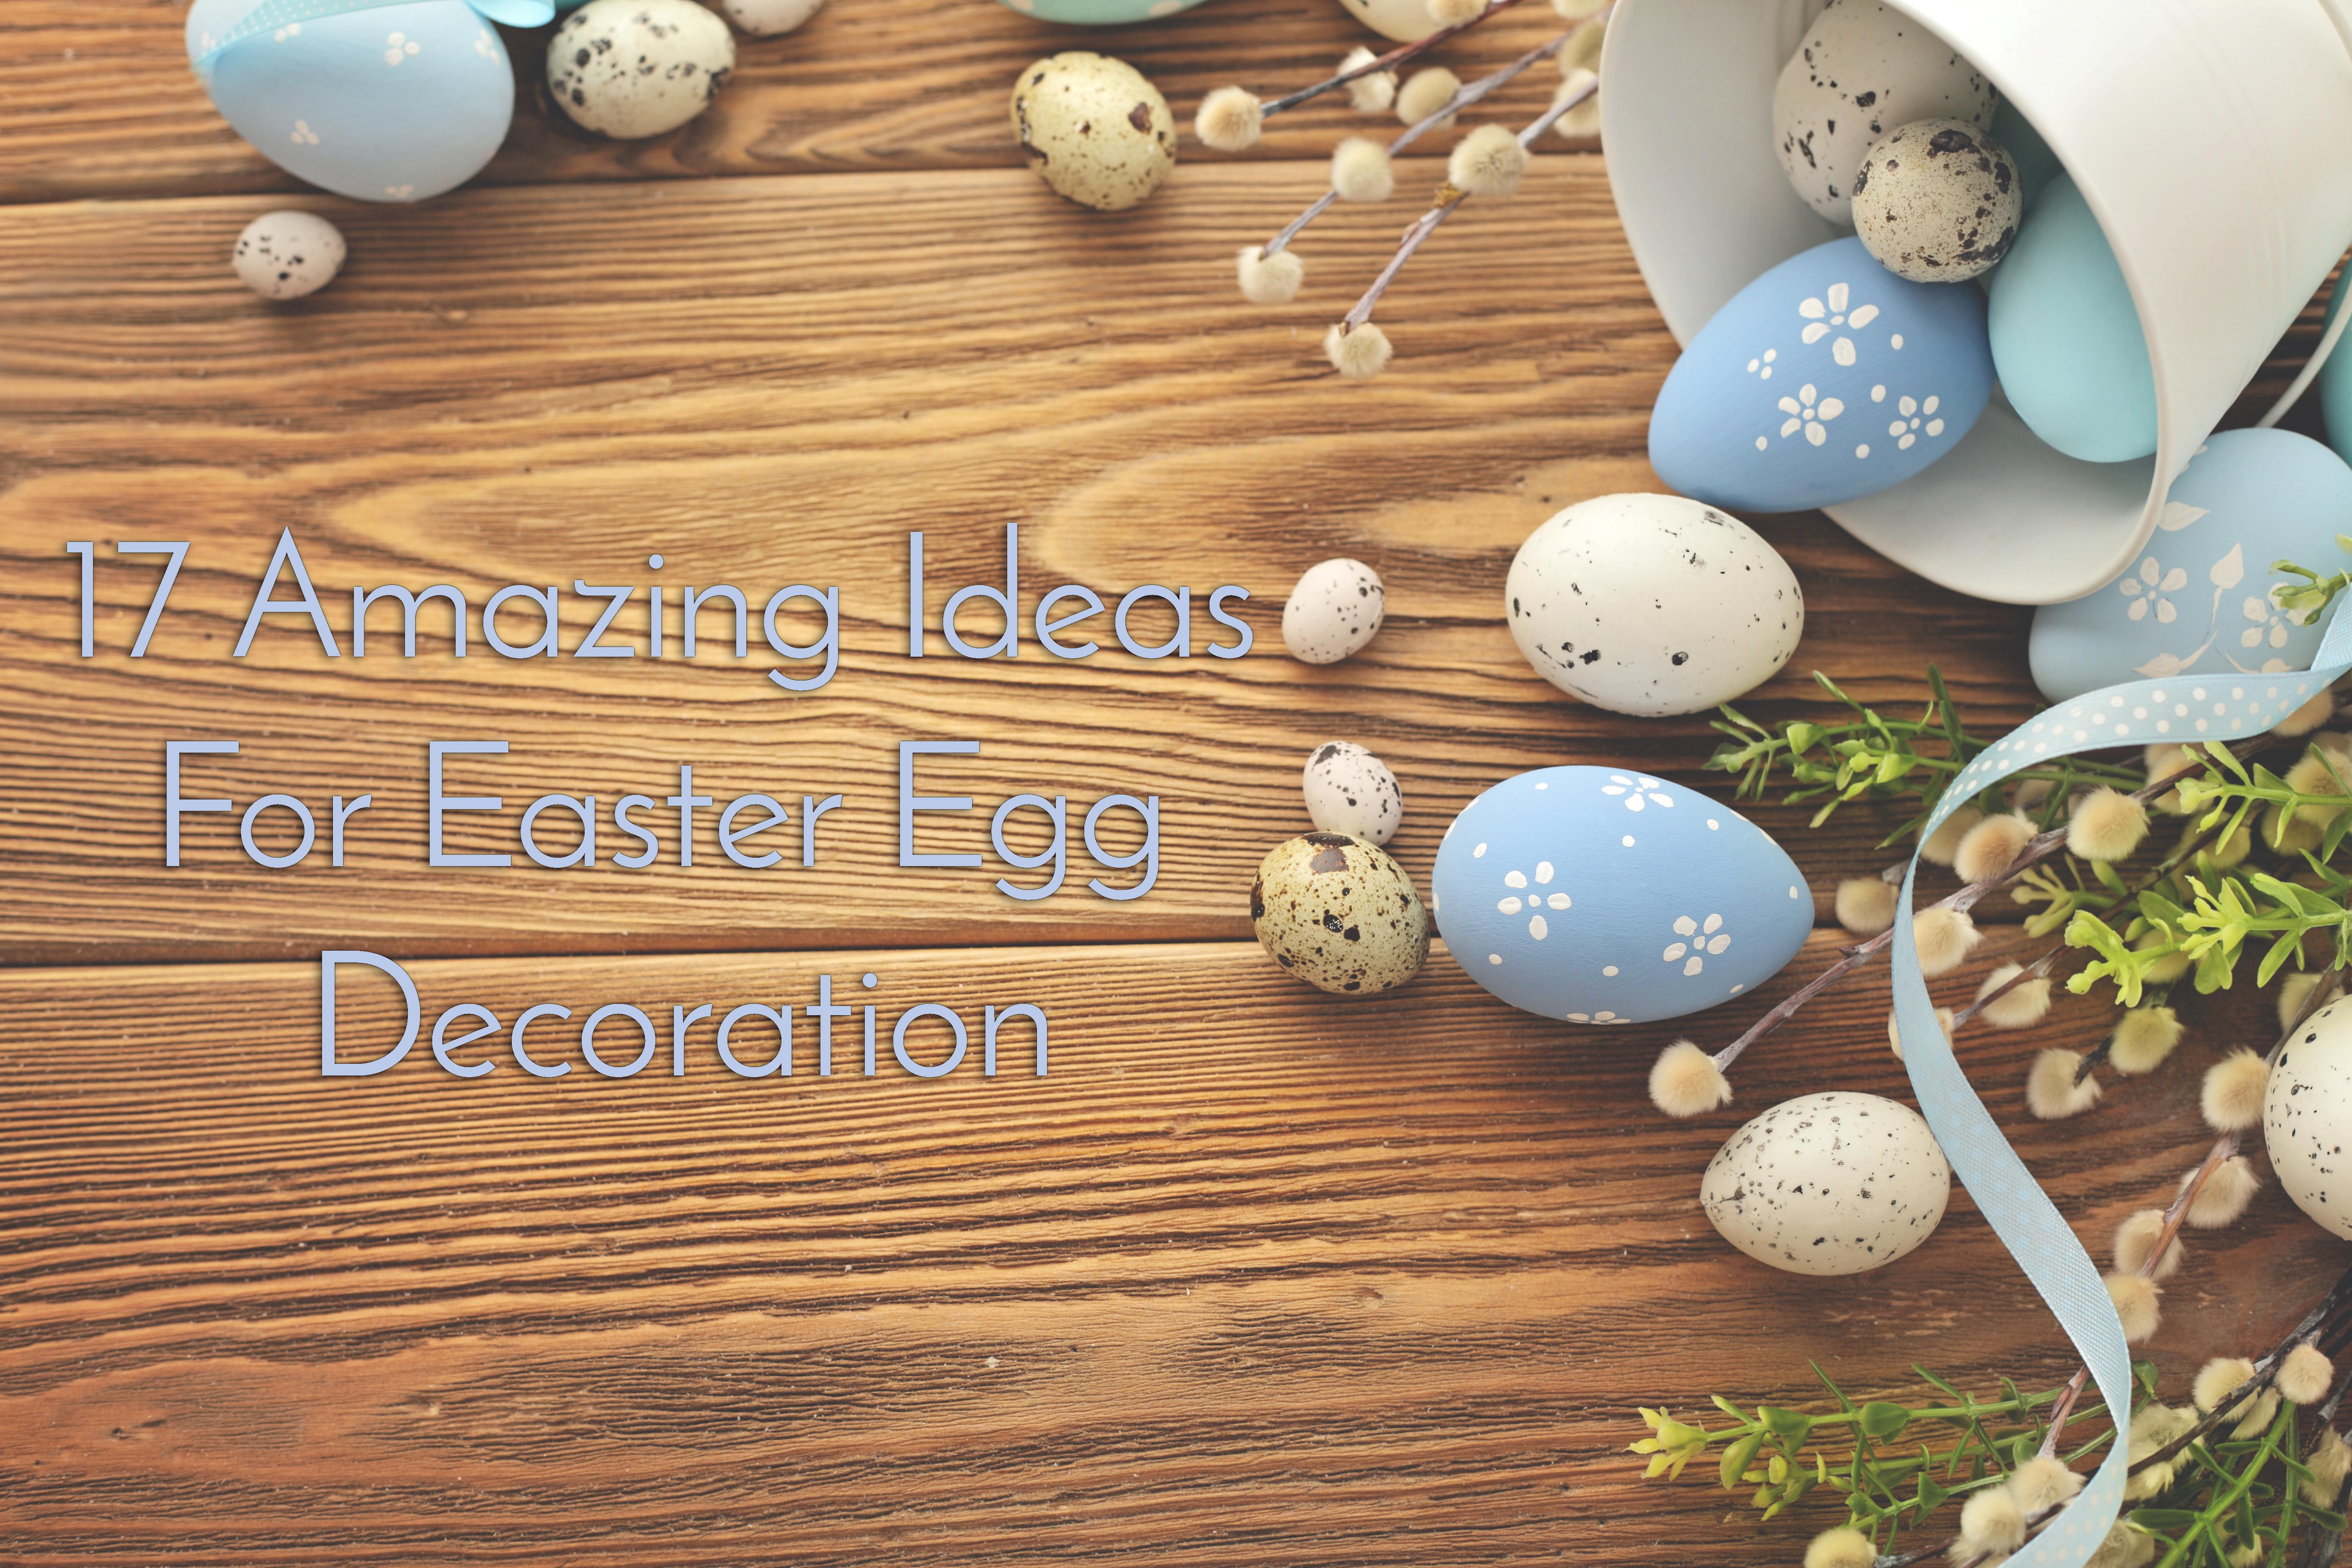 17 Amazing Ideas for Easter Egg Decoration